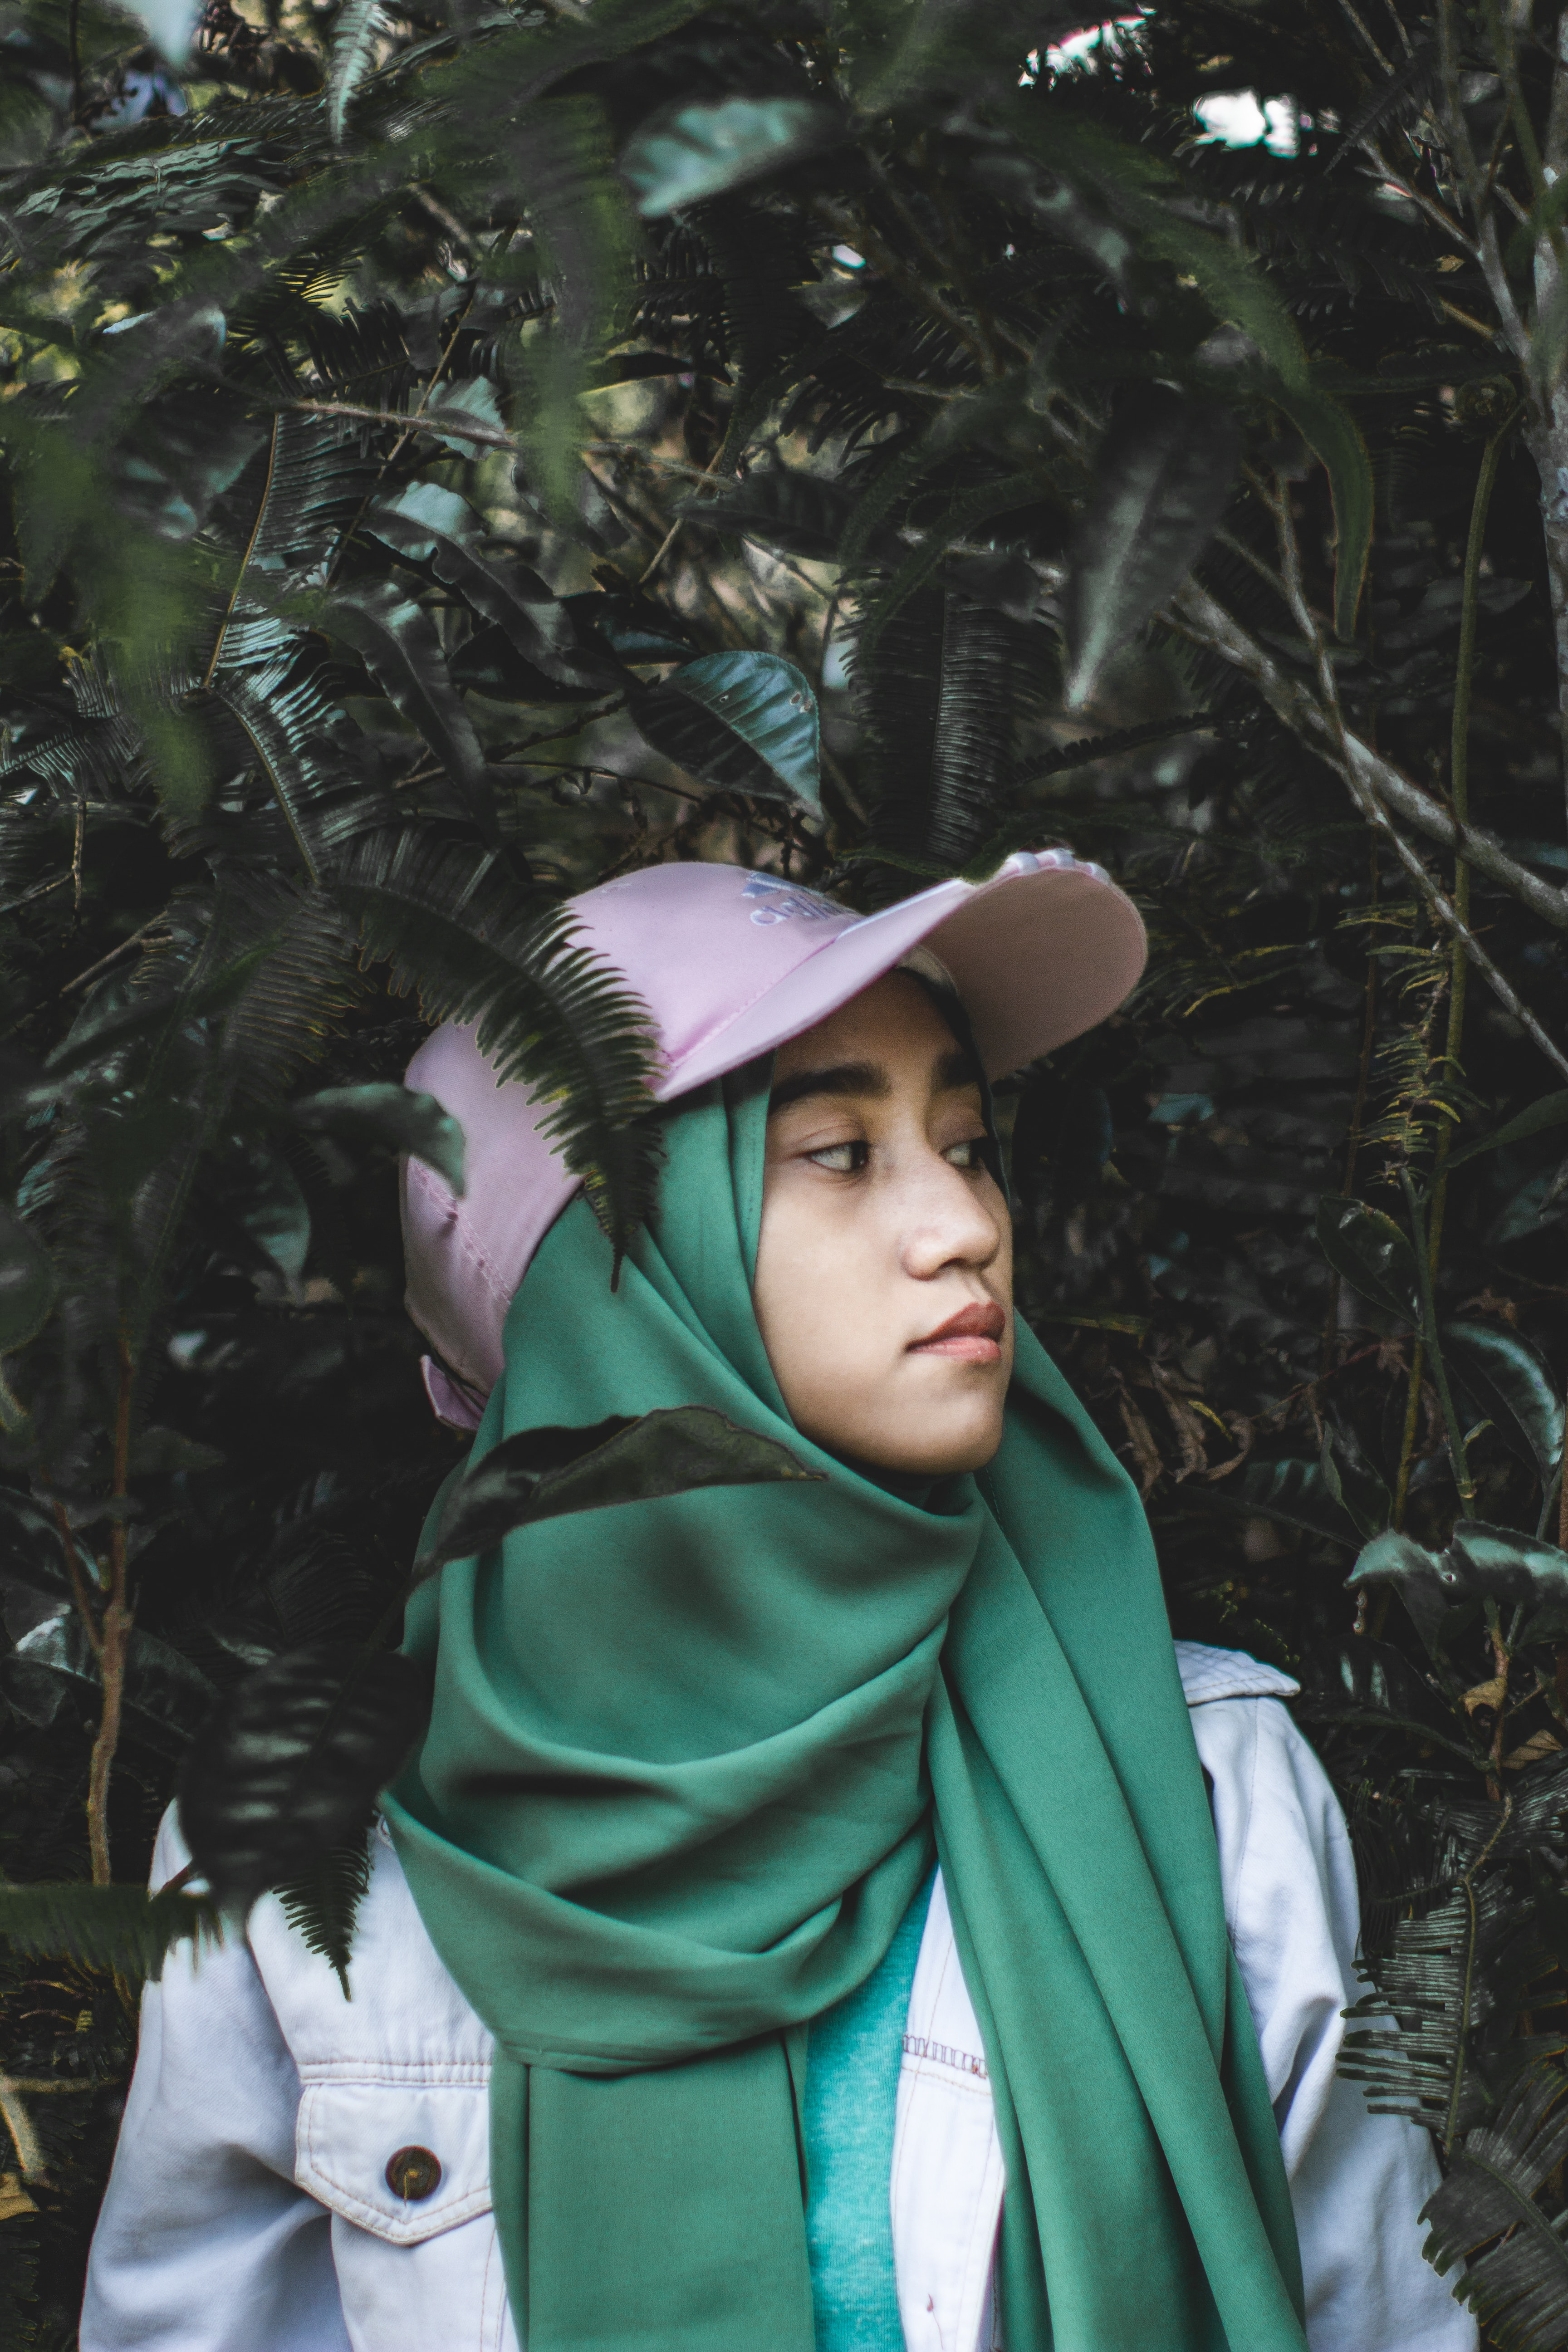 Niqab Woman Standing Between Trees Stylostreet 500 Hijab Pictures hd Download Free Images On Unsplash